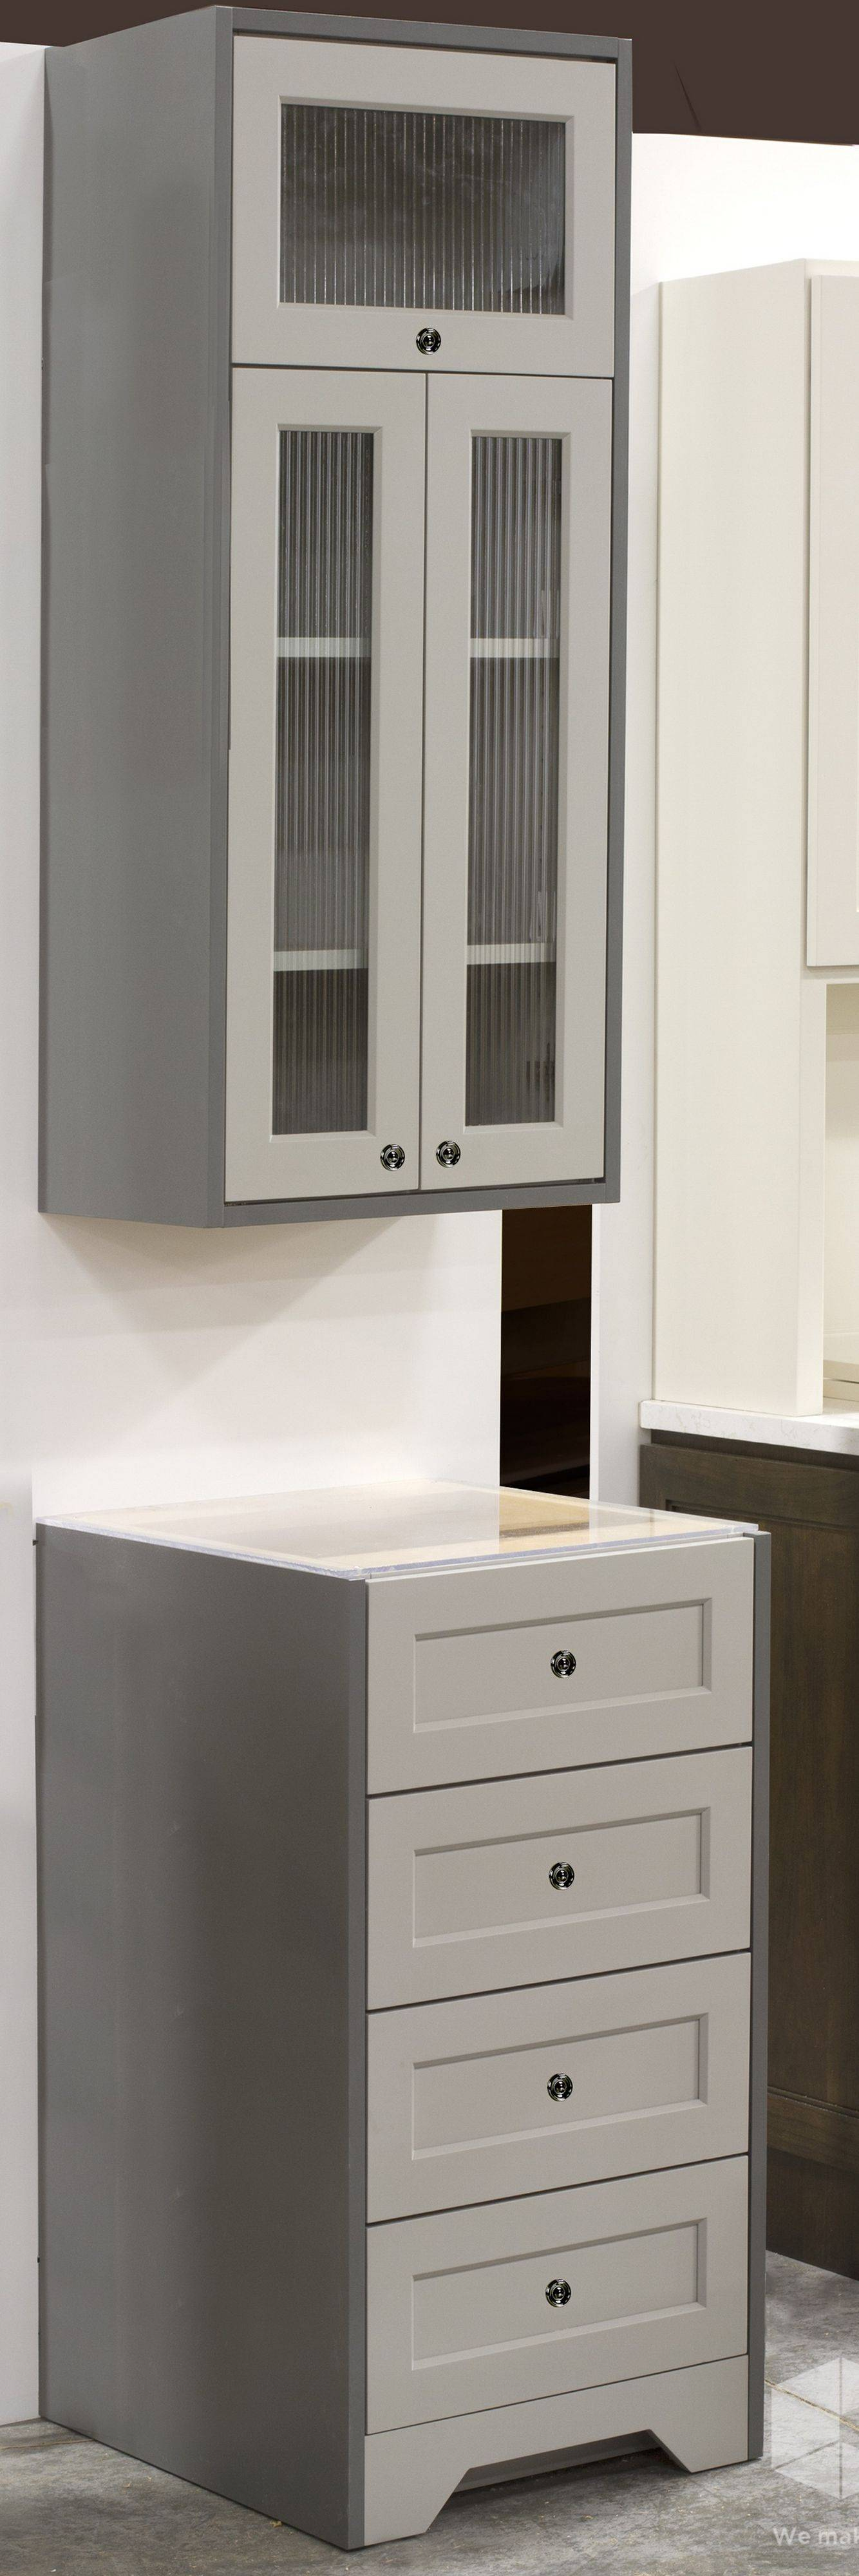 Gray is the color this year for kitchen cabinets if your style is neutral, say Roger Hazard and other designers.